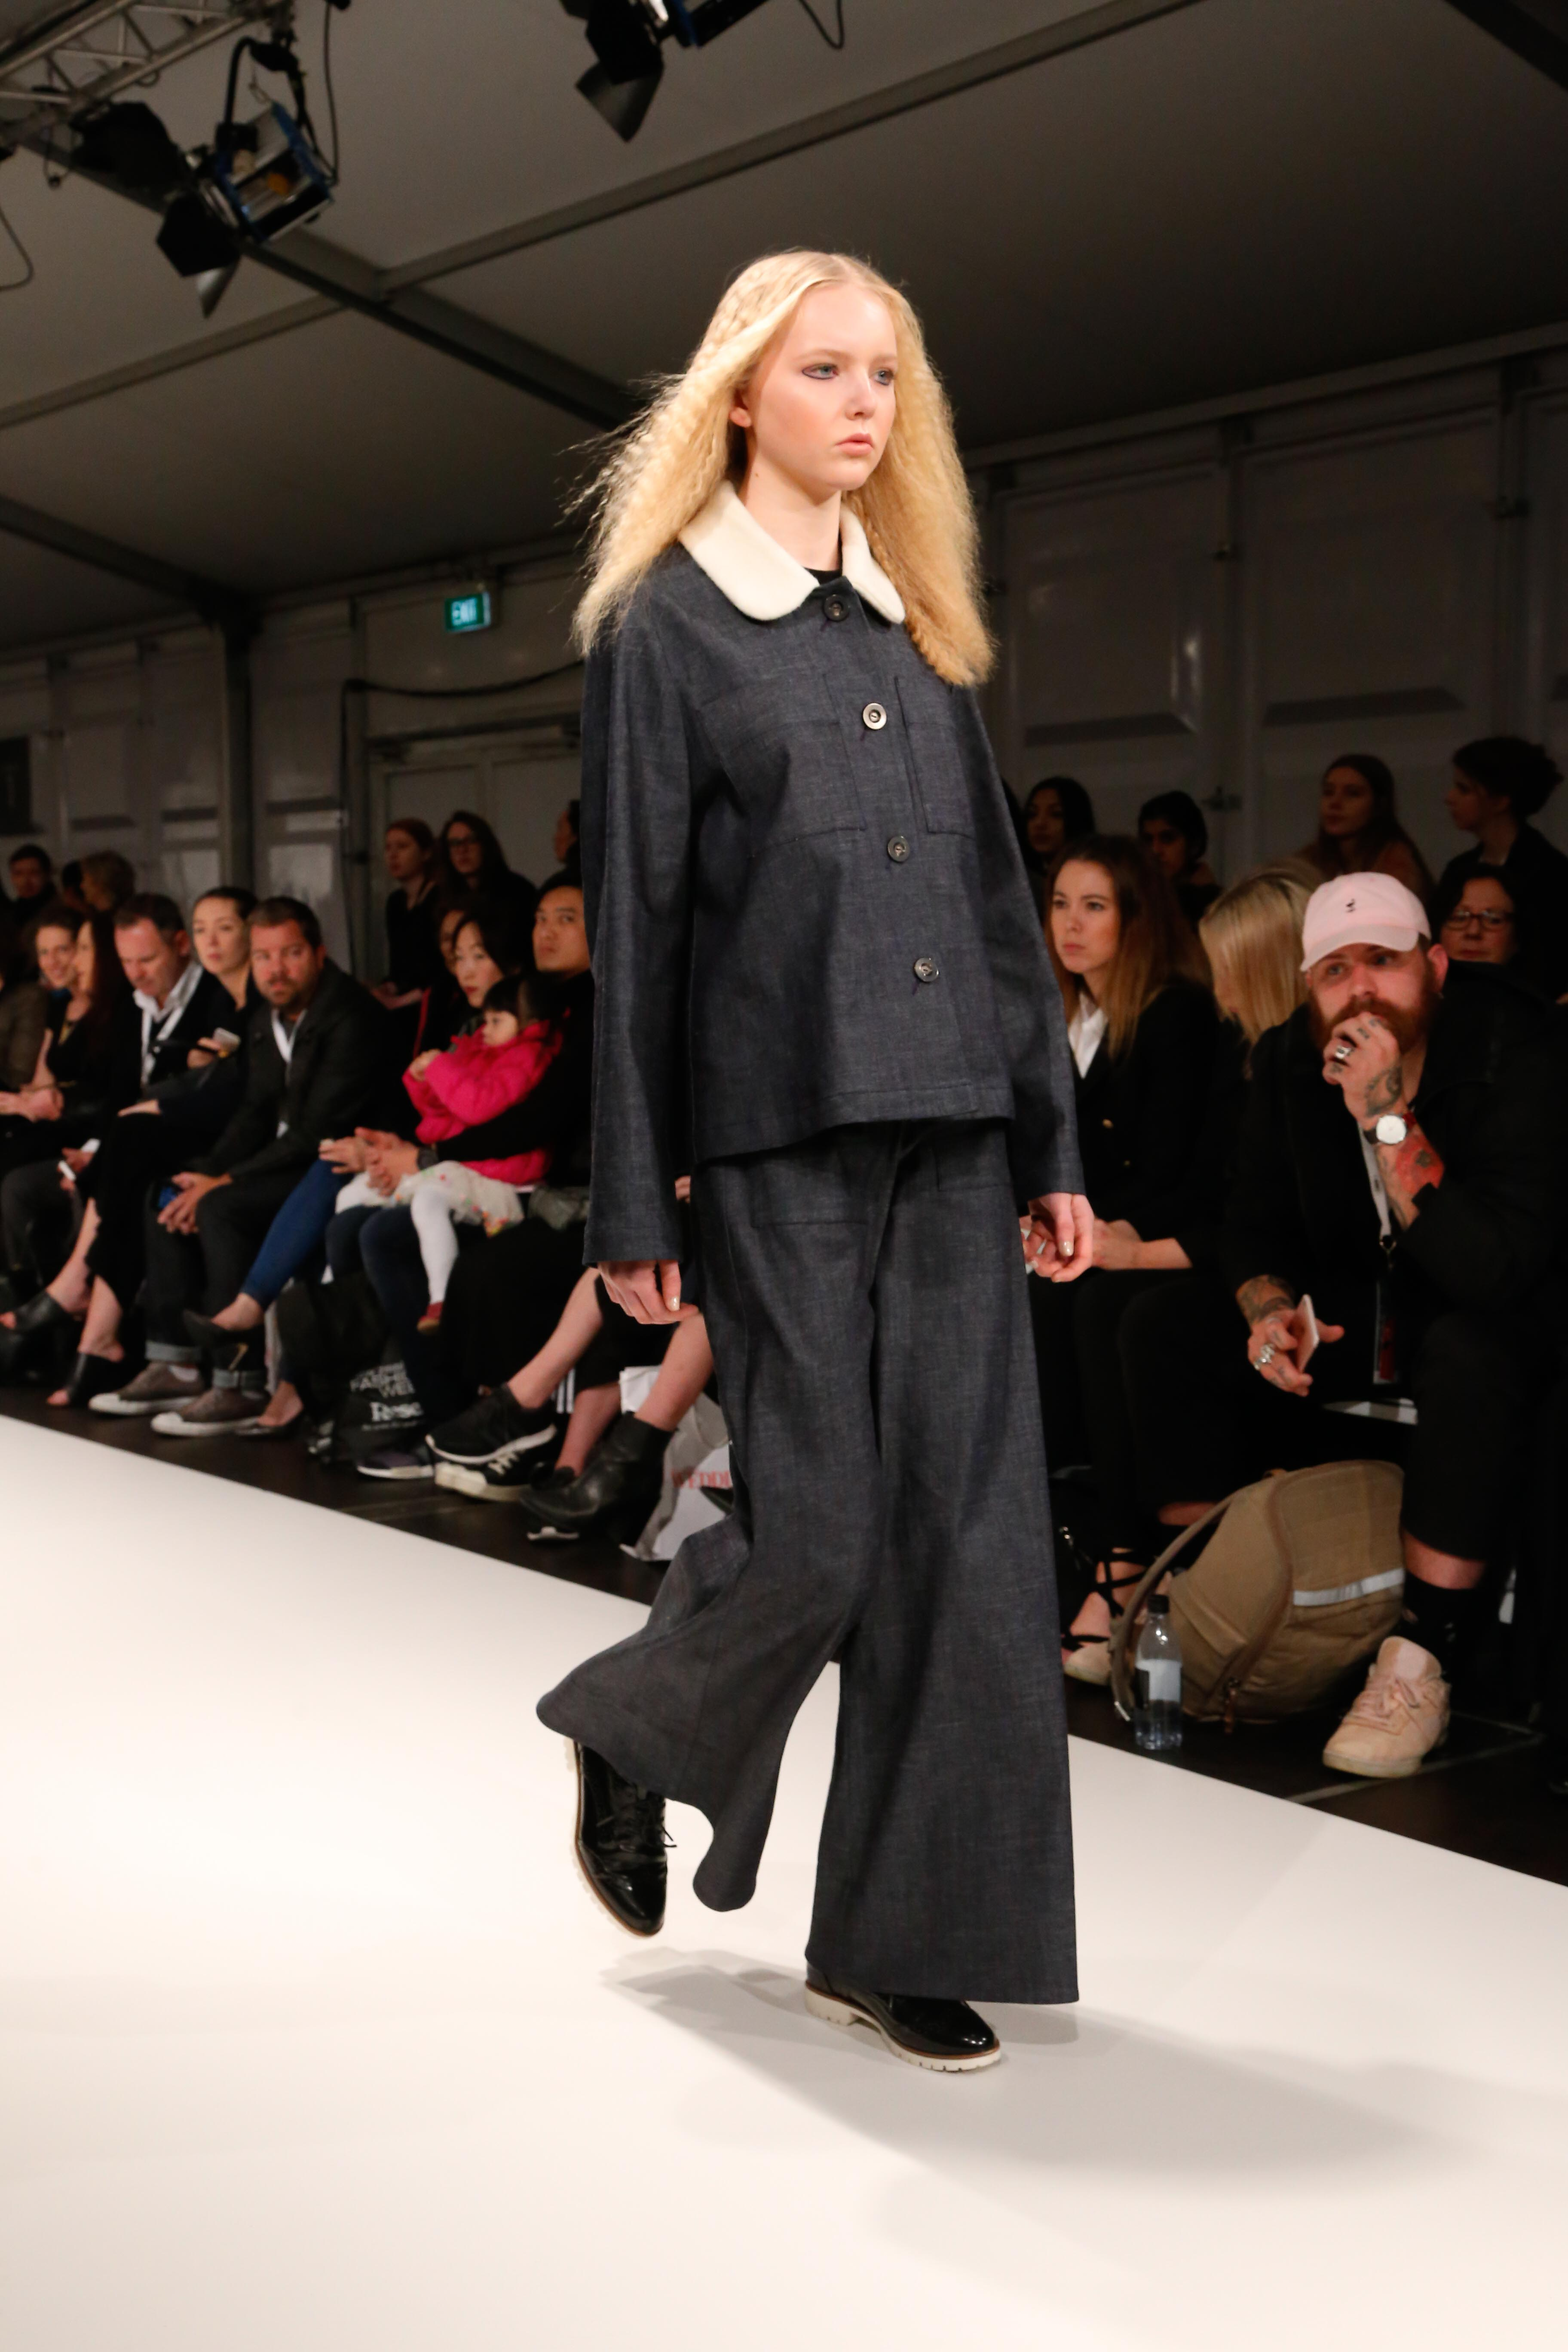 Libby walks the Lucilla Gray Show at NZFW